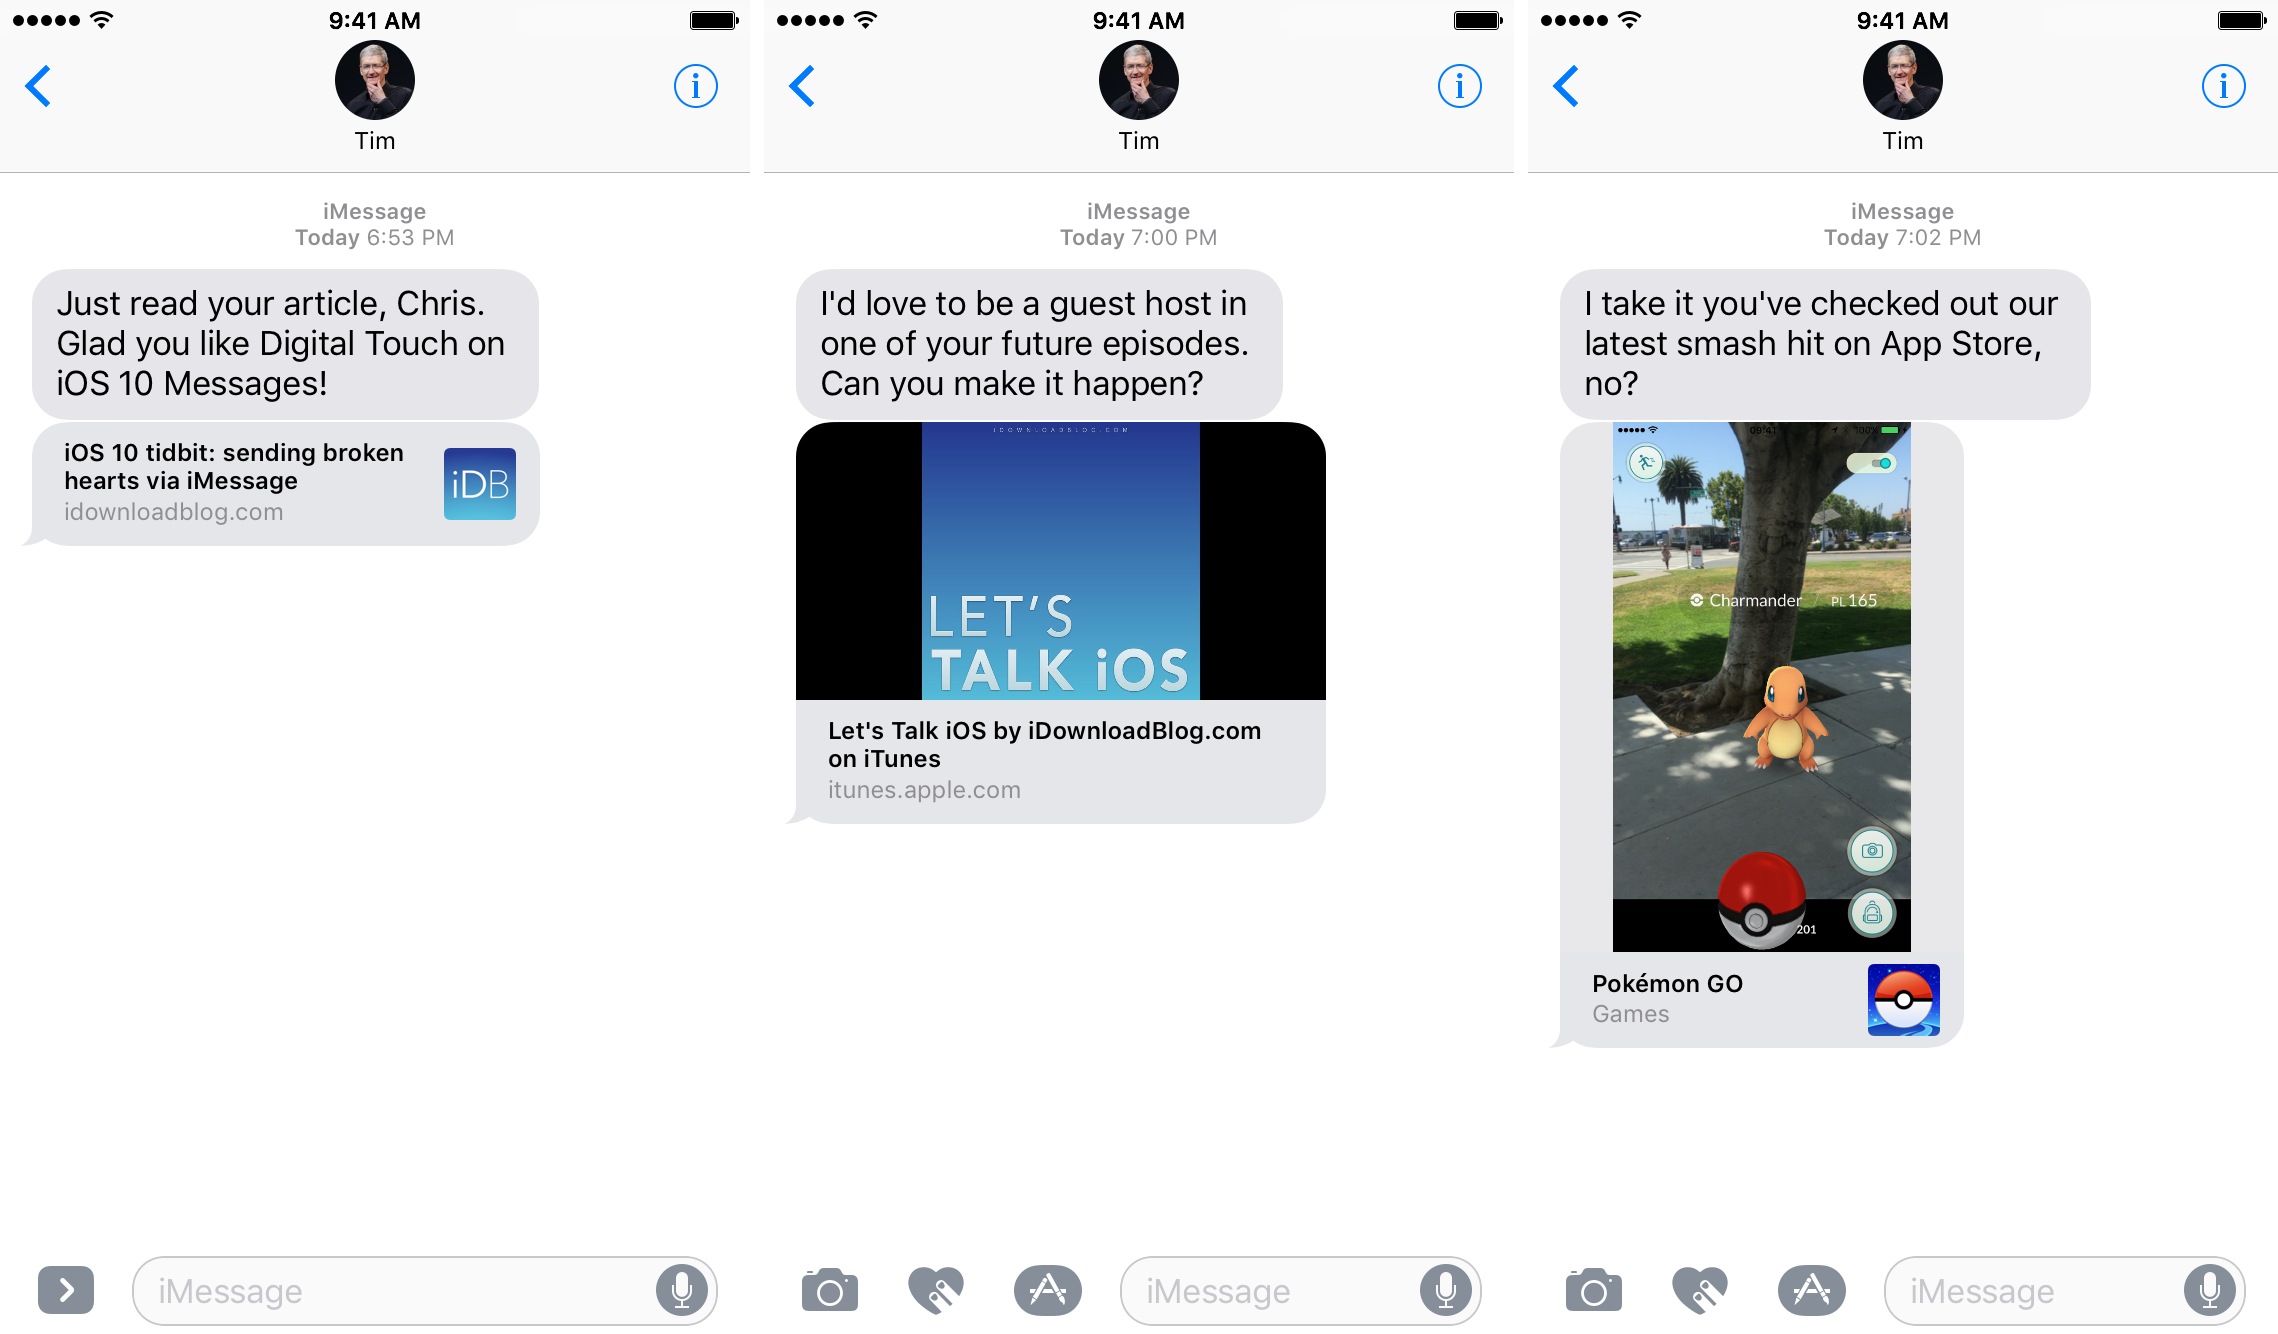 iOS 10 Messages Spotlight Suggestions Safari iTunes App Store iPhone screenshot 001